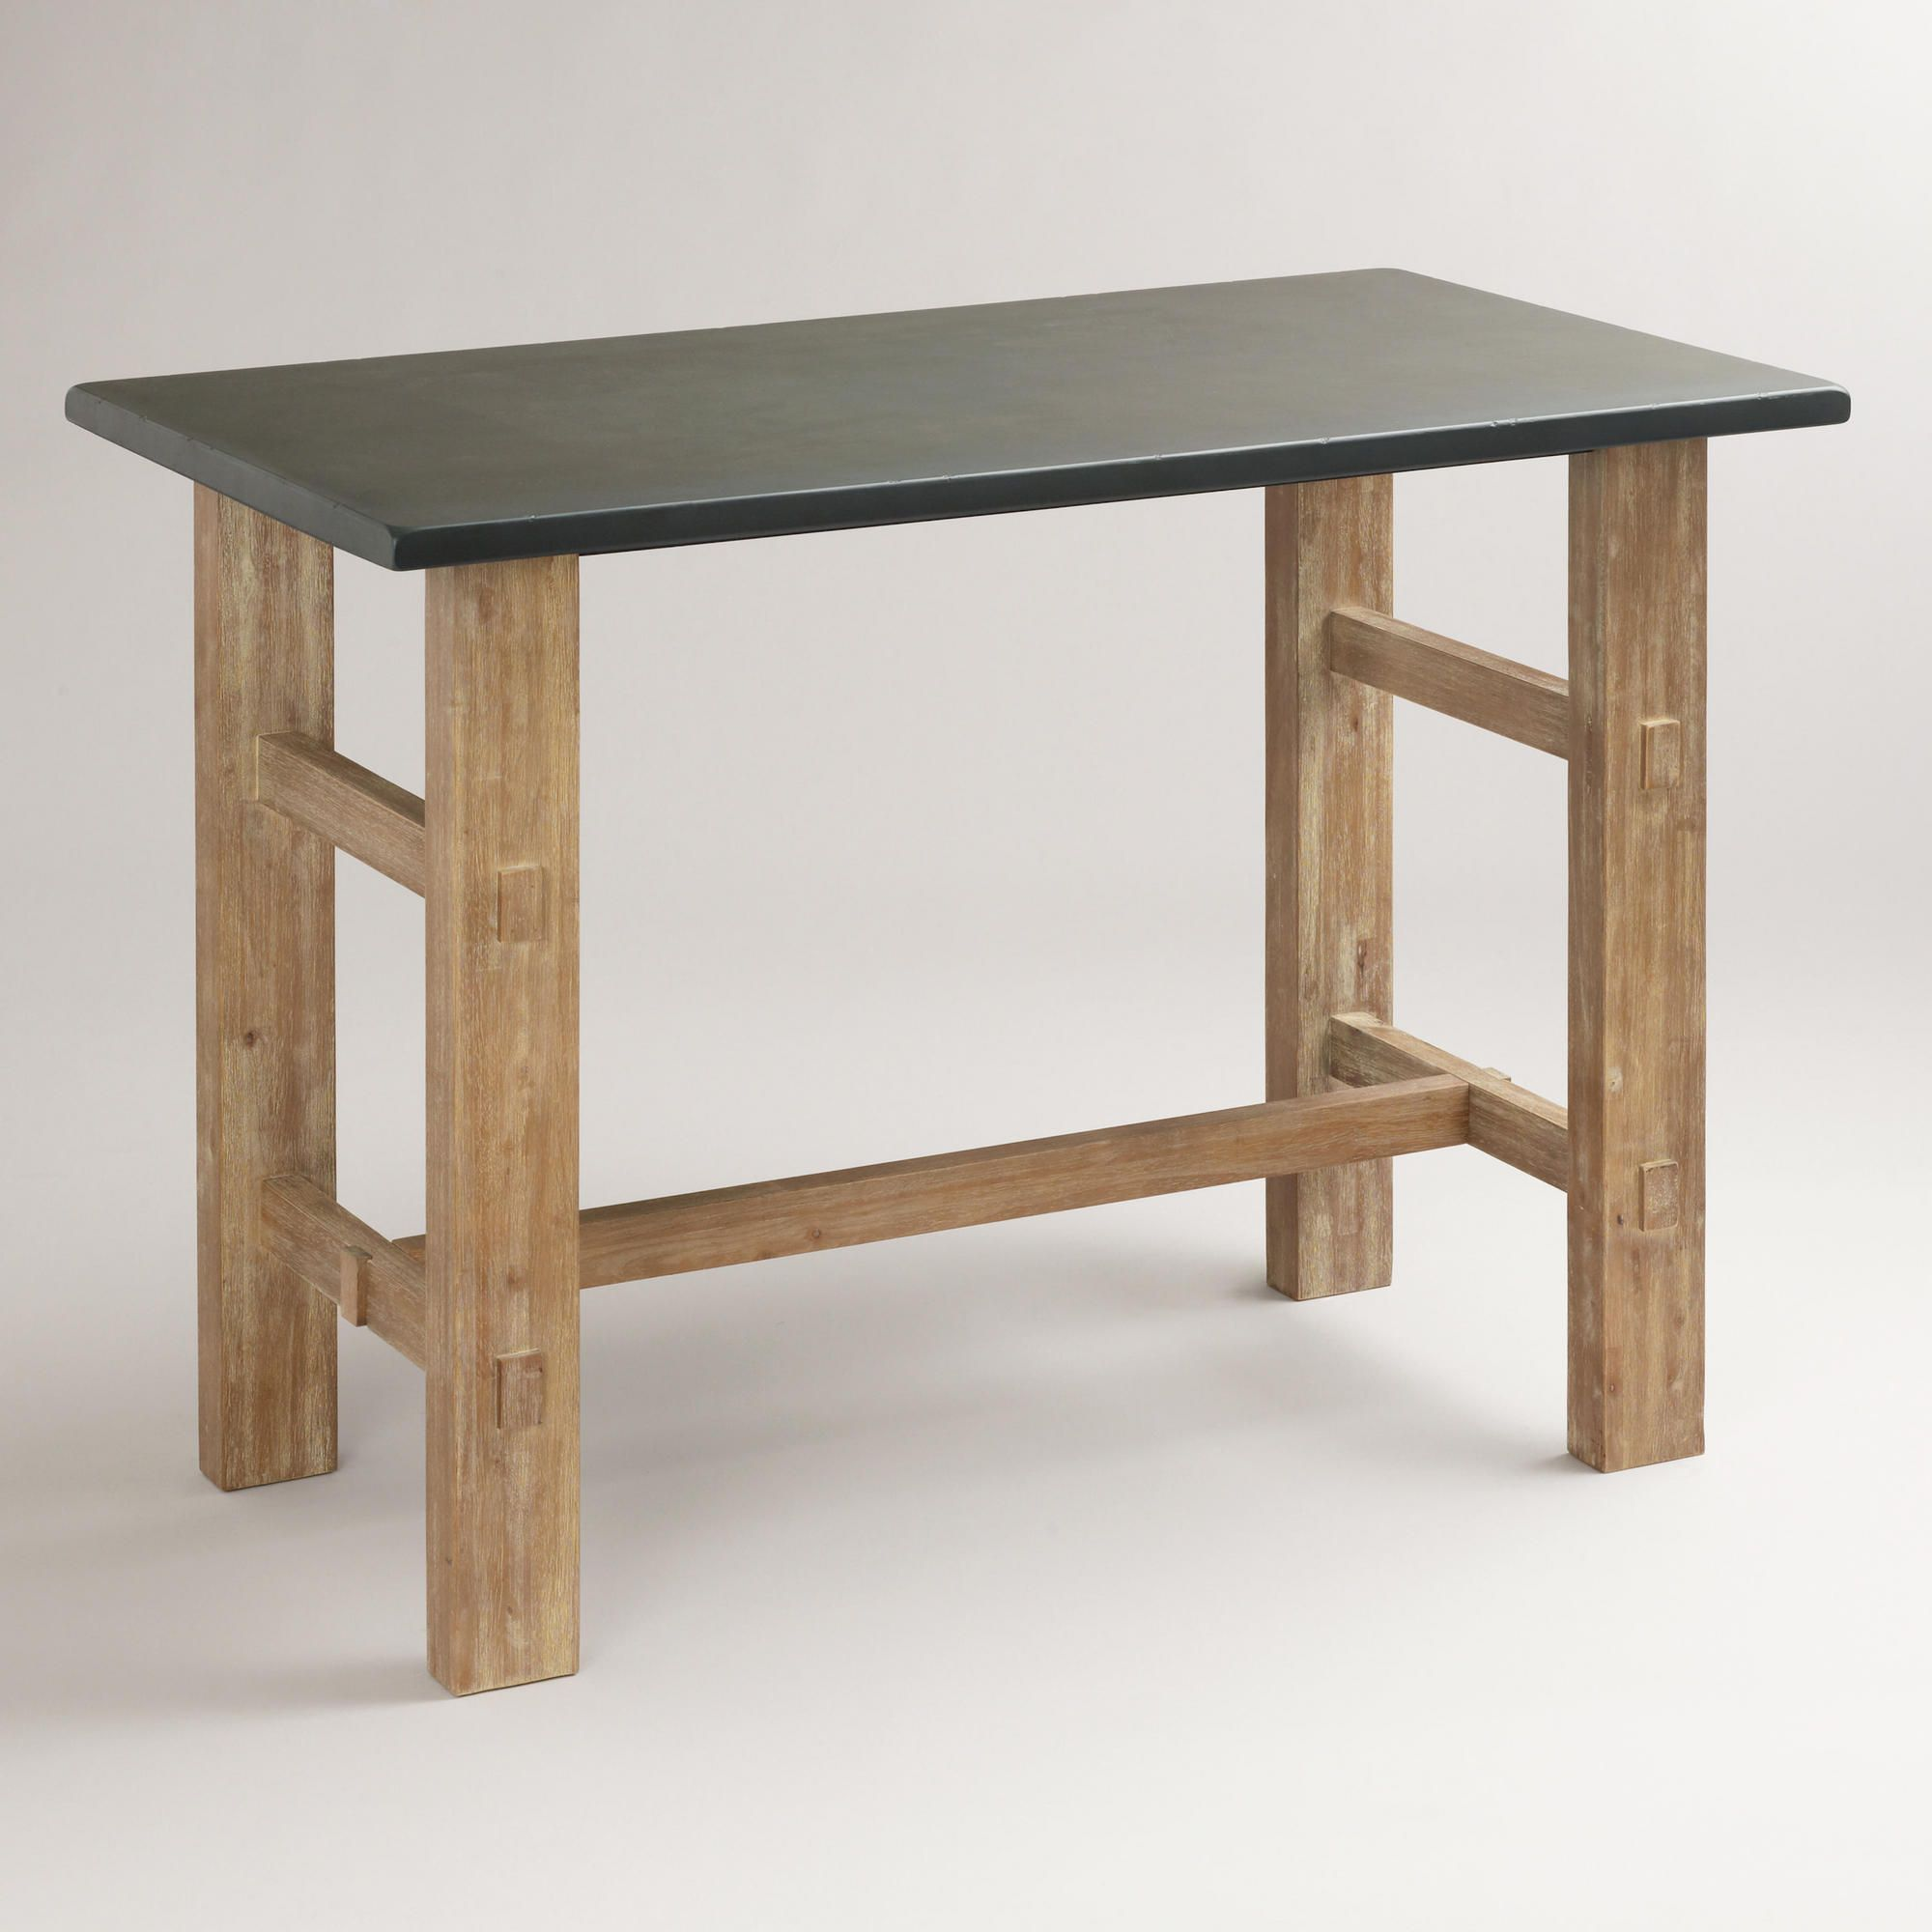 Antique kitchen work table - Brooklyn Work Table Desks World And World Market Wood Kitchen Work Tables